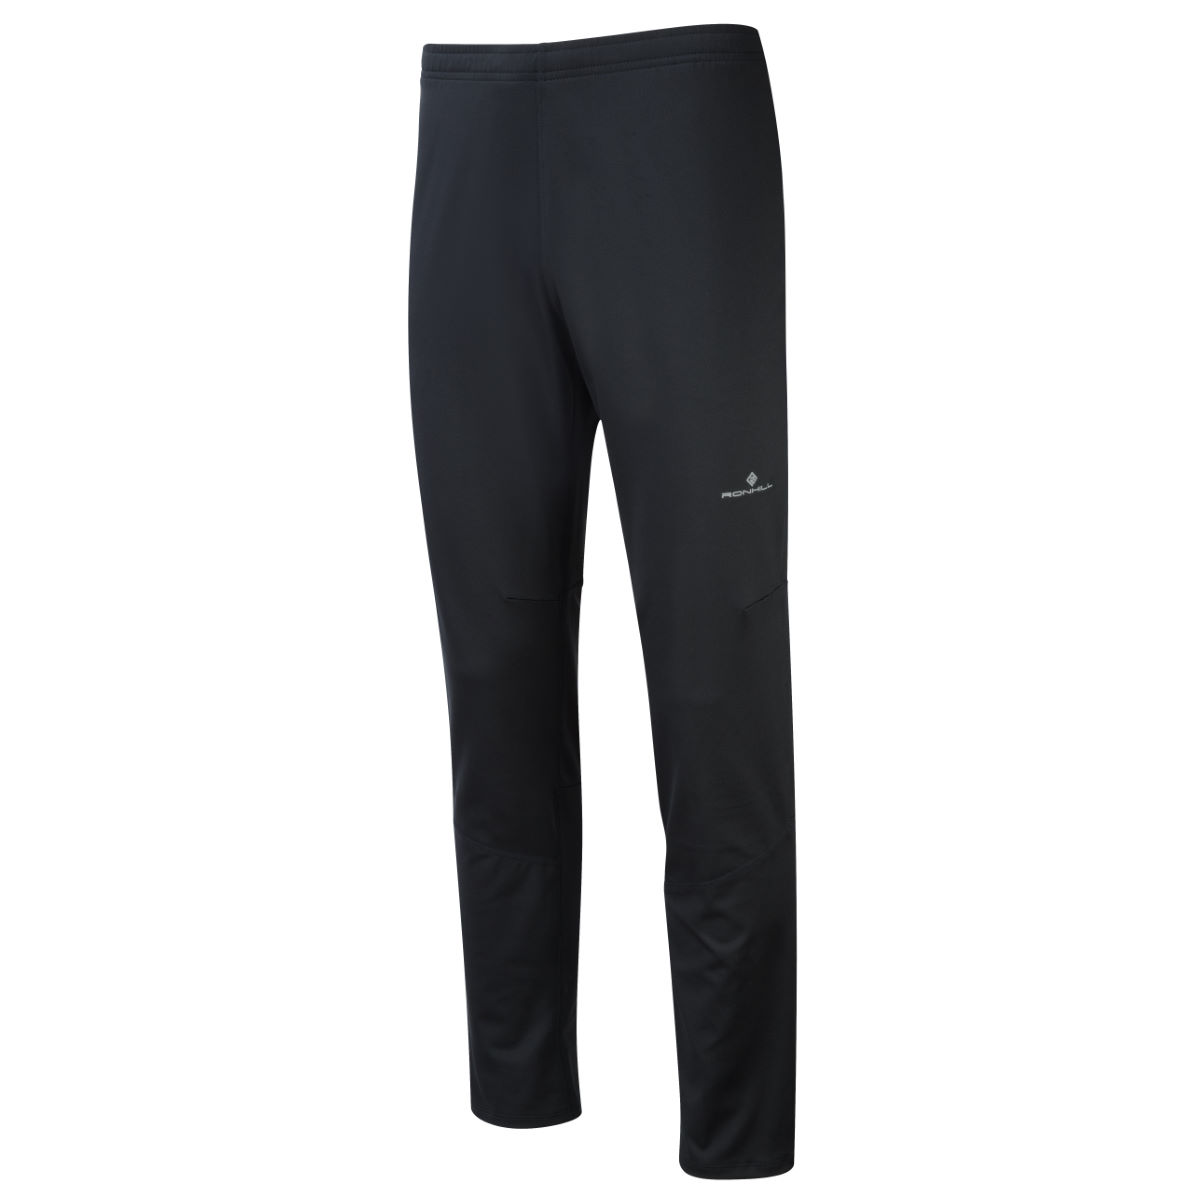 Pantalon de running Ronhill Trail All-Terrain - XL Noir Pantalons de running